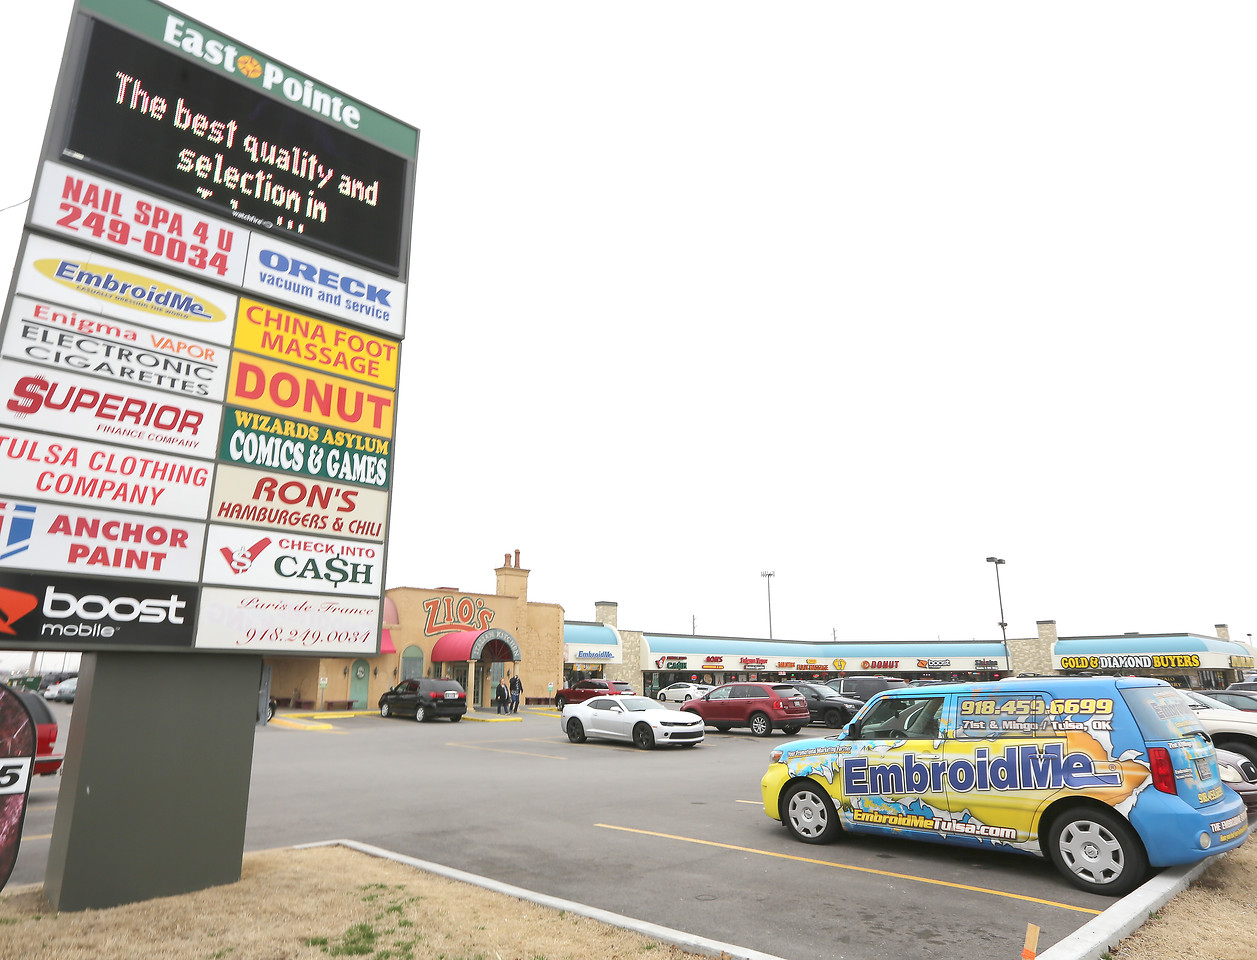 LaFortune Properties paid $6.5 million for south Tulsa's the East Pointe shopping center.